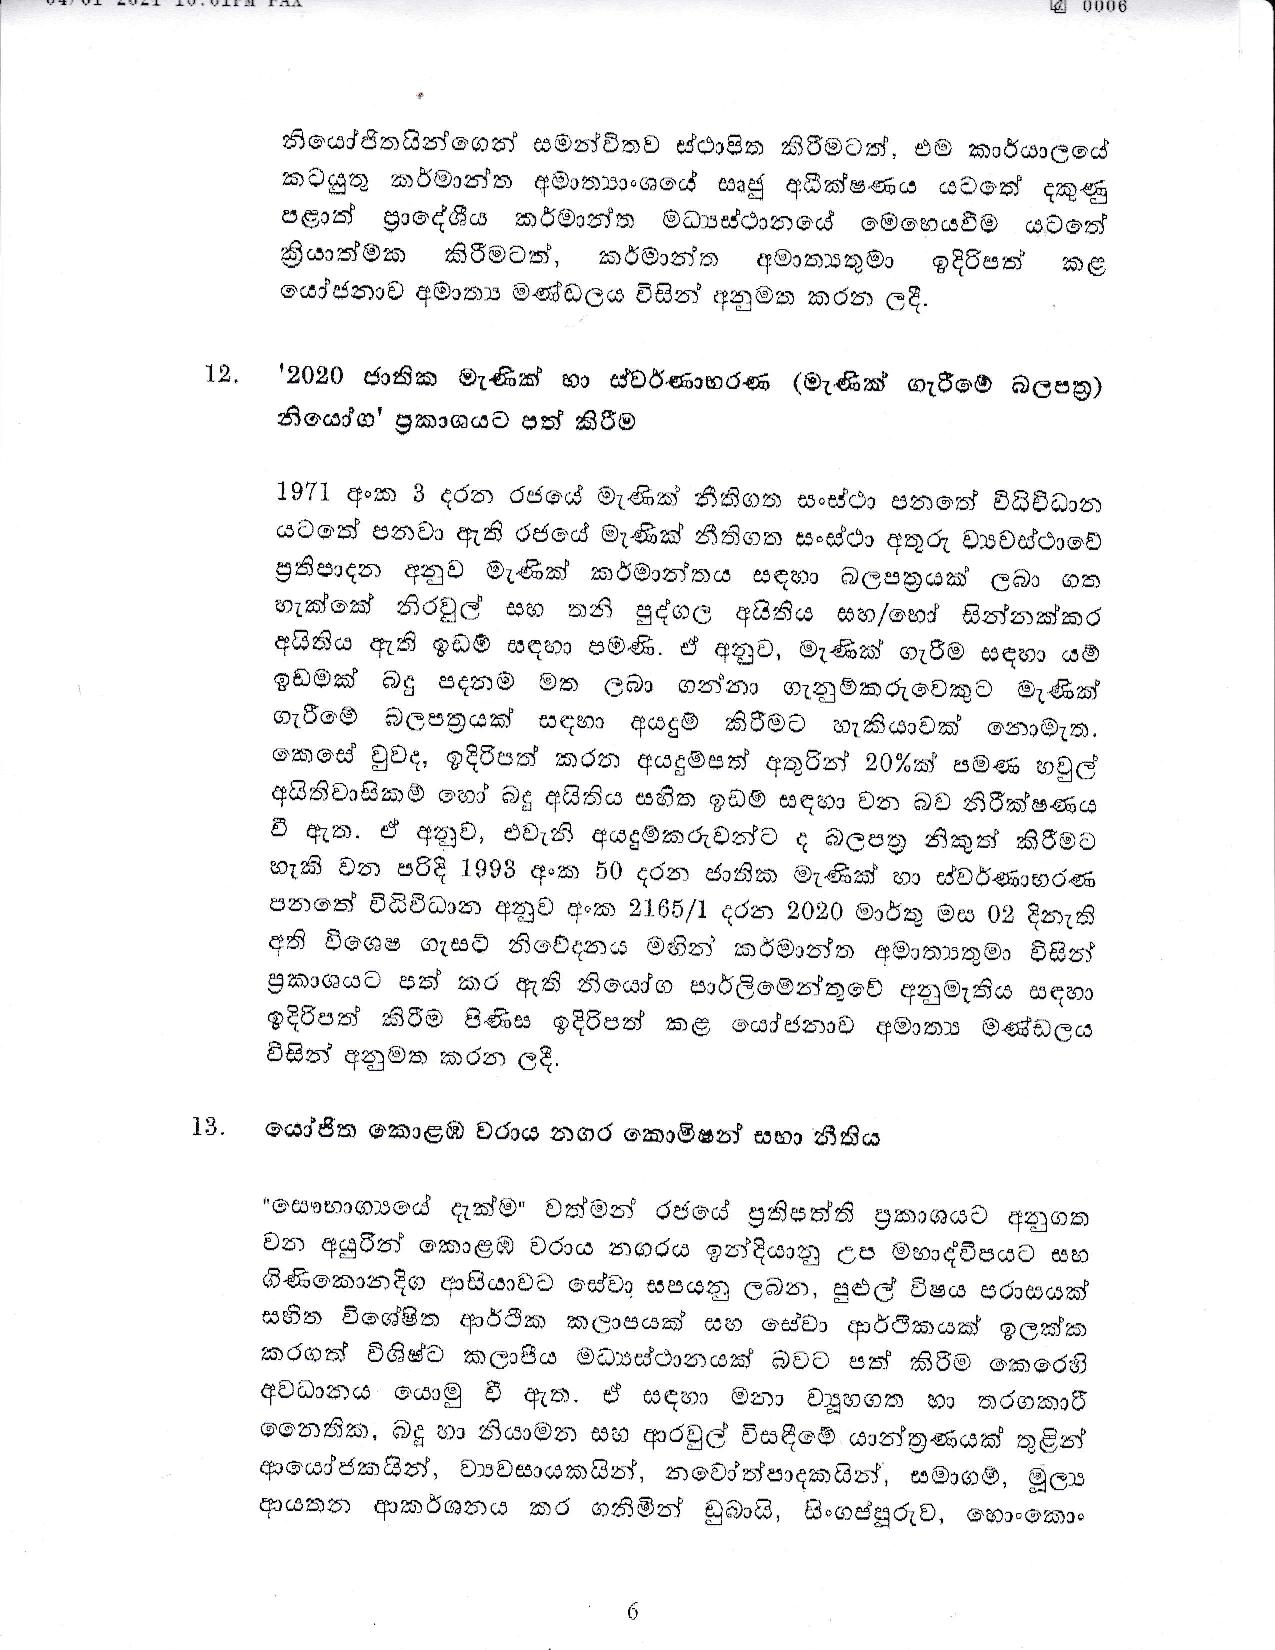 Cabinet Decision on 04.01.2021 page 006